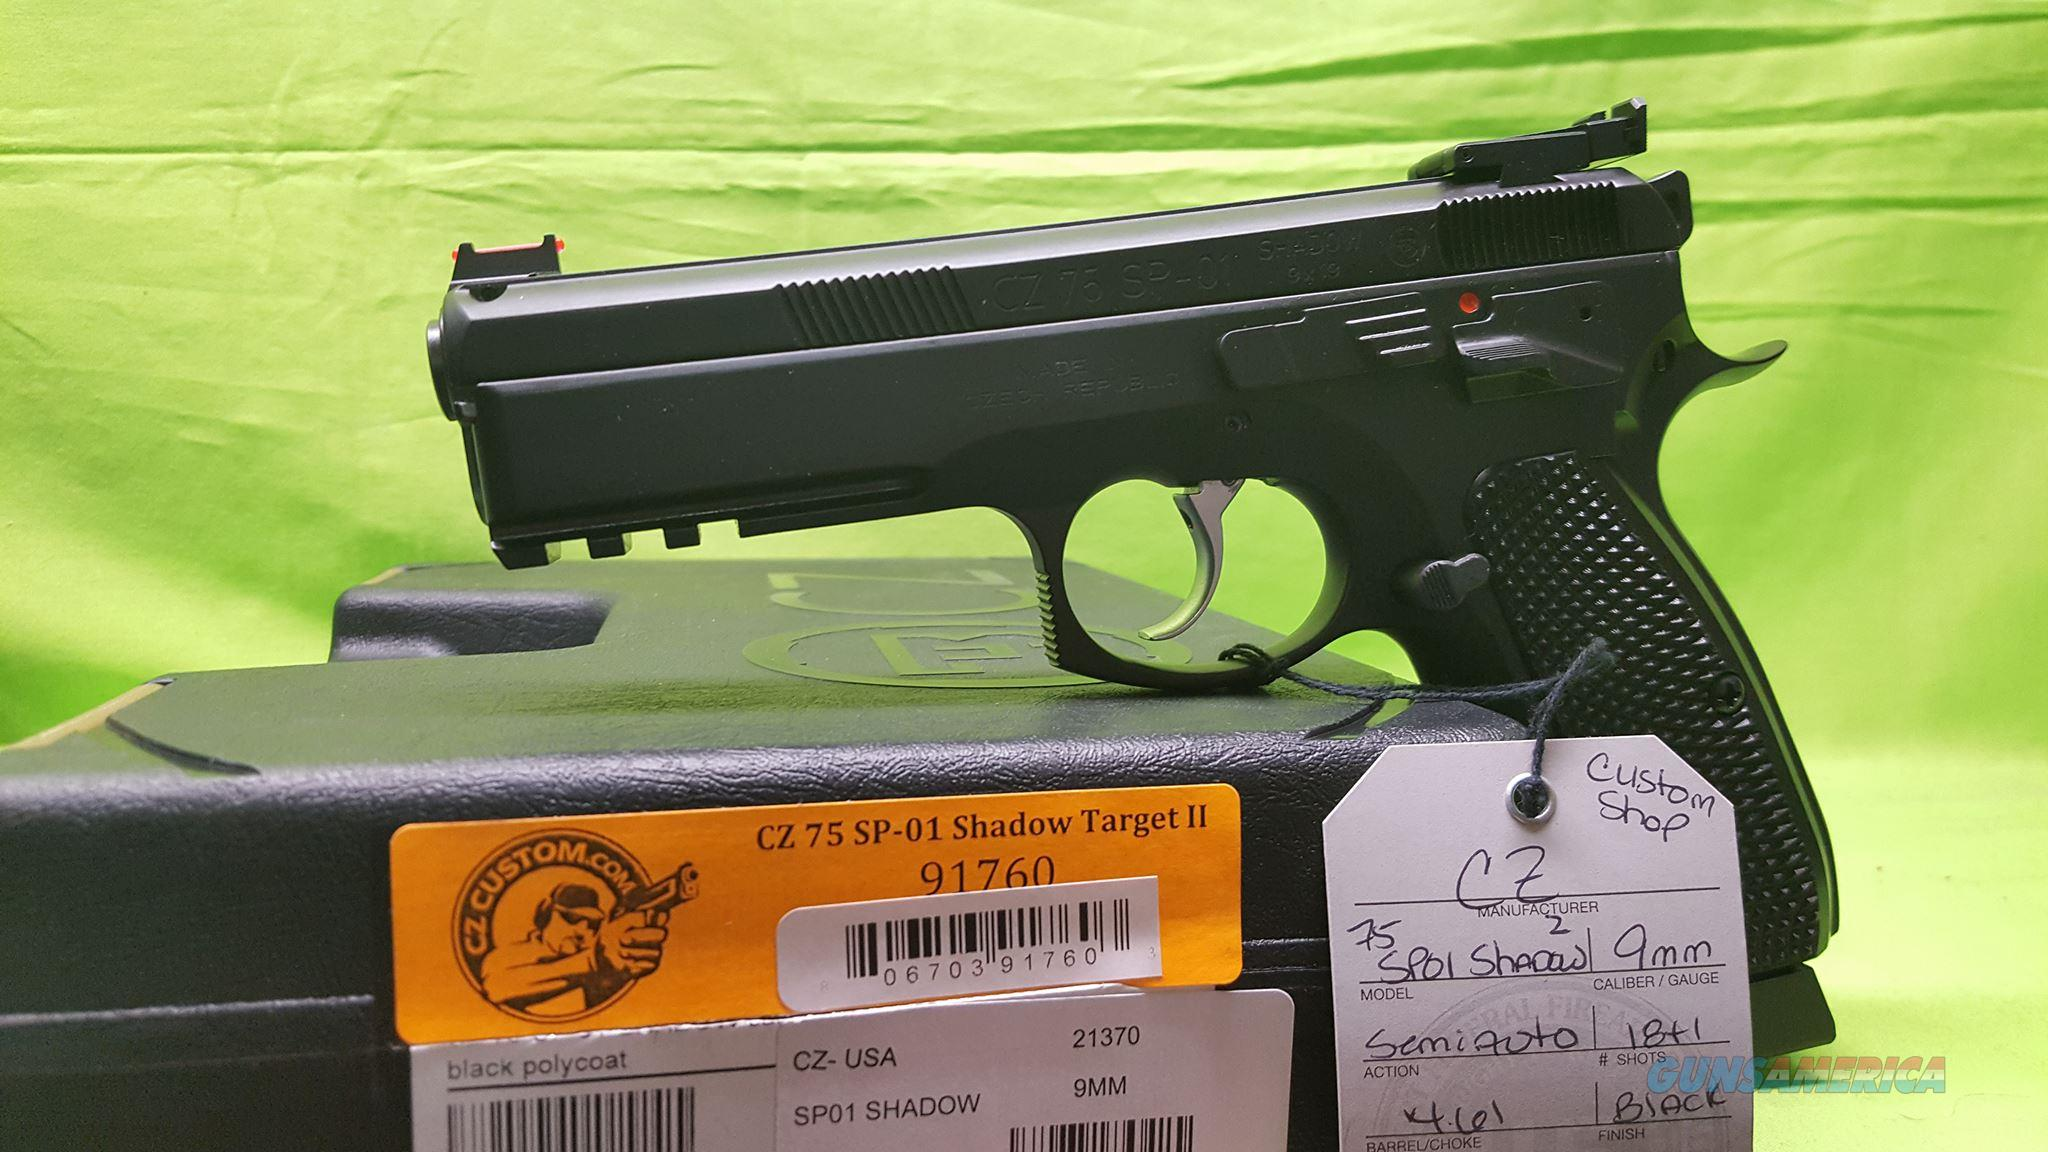 CZ 75 SP-01 SP01 SHADOW TACTICAL II 2 9MM 91760 9  Guns > Pistols > CZ Pistols